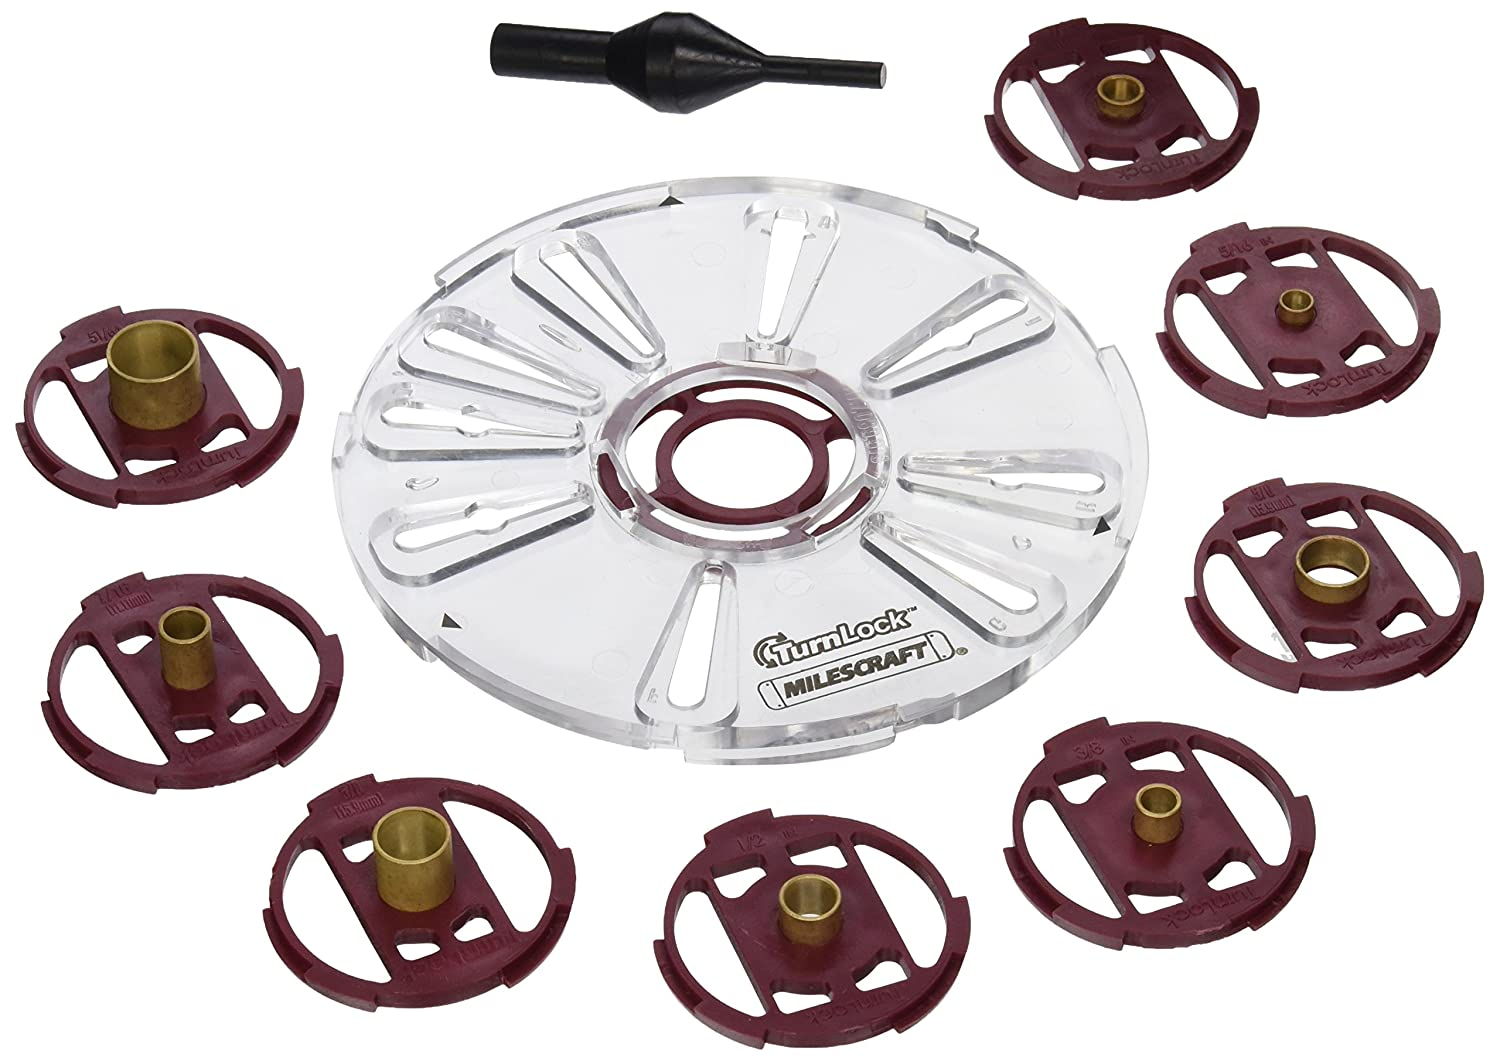 Milescraft 1201 Base Plate/Bushing Set for Routers